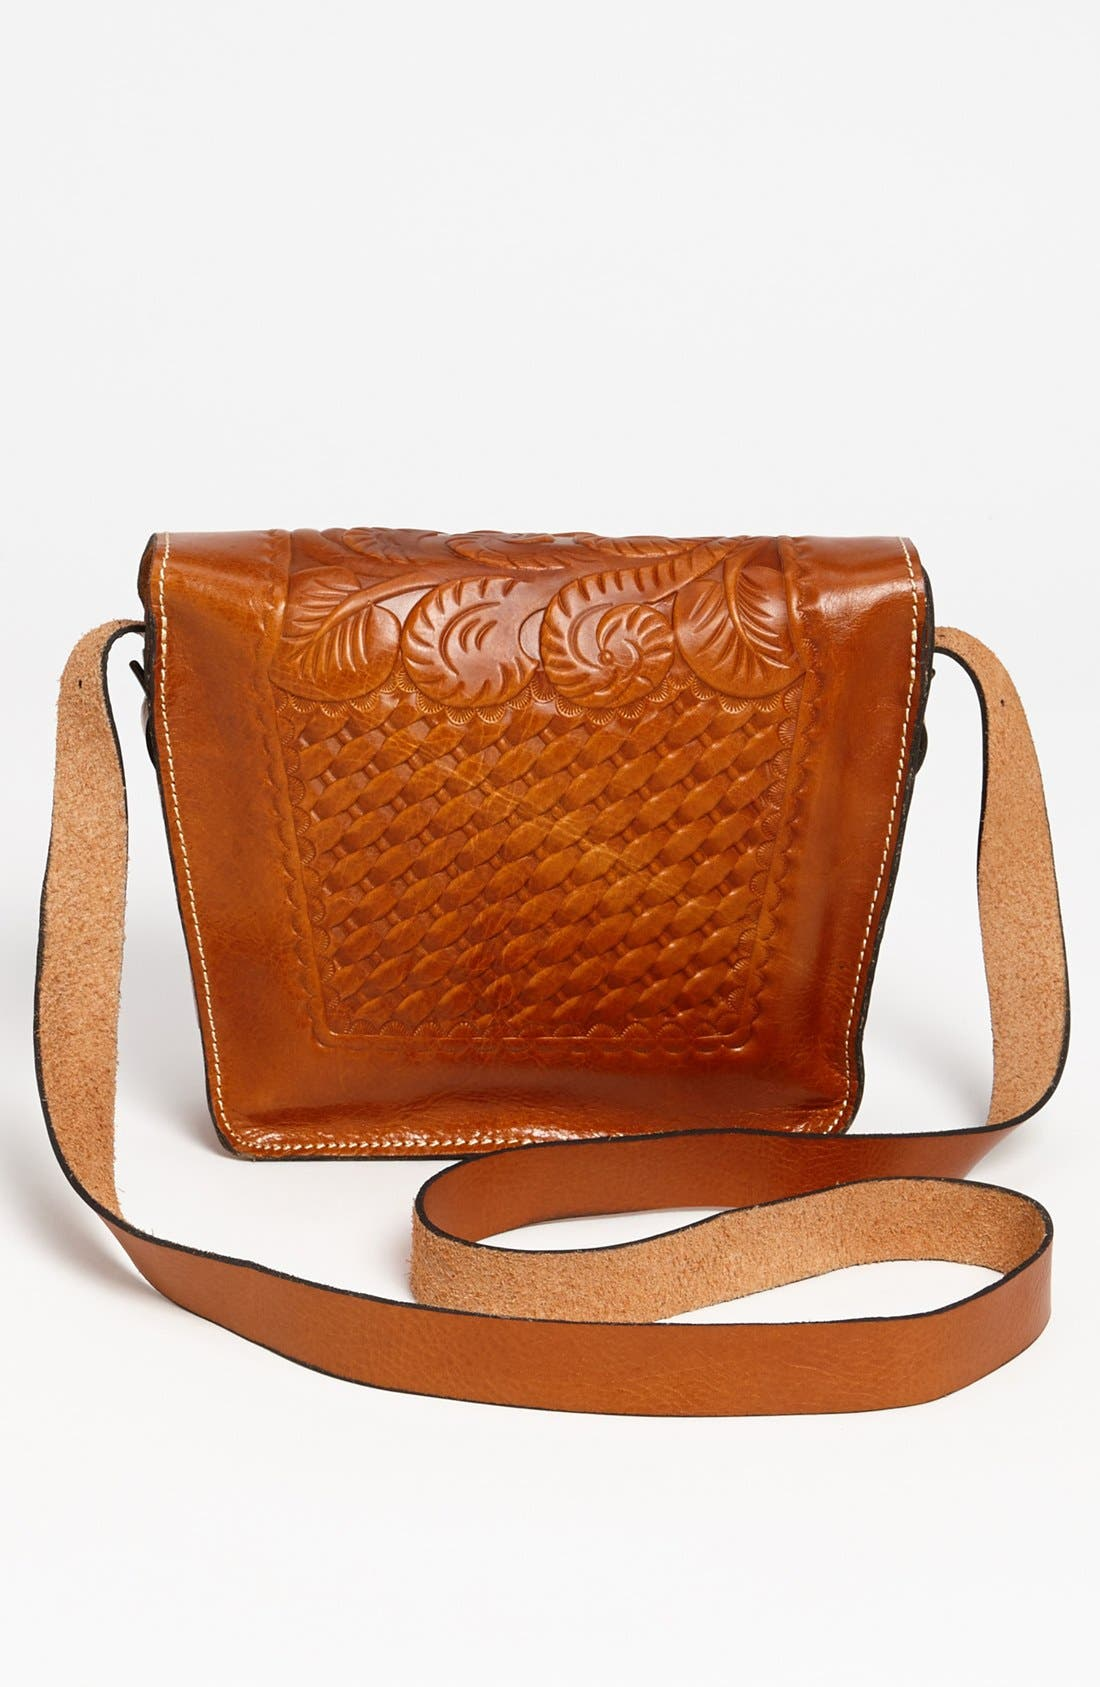 'Marciano' Leather Crossbody Bag,                             Alternate thumbnail 3, color,                             200